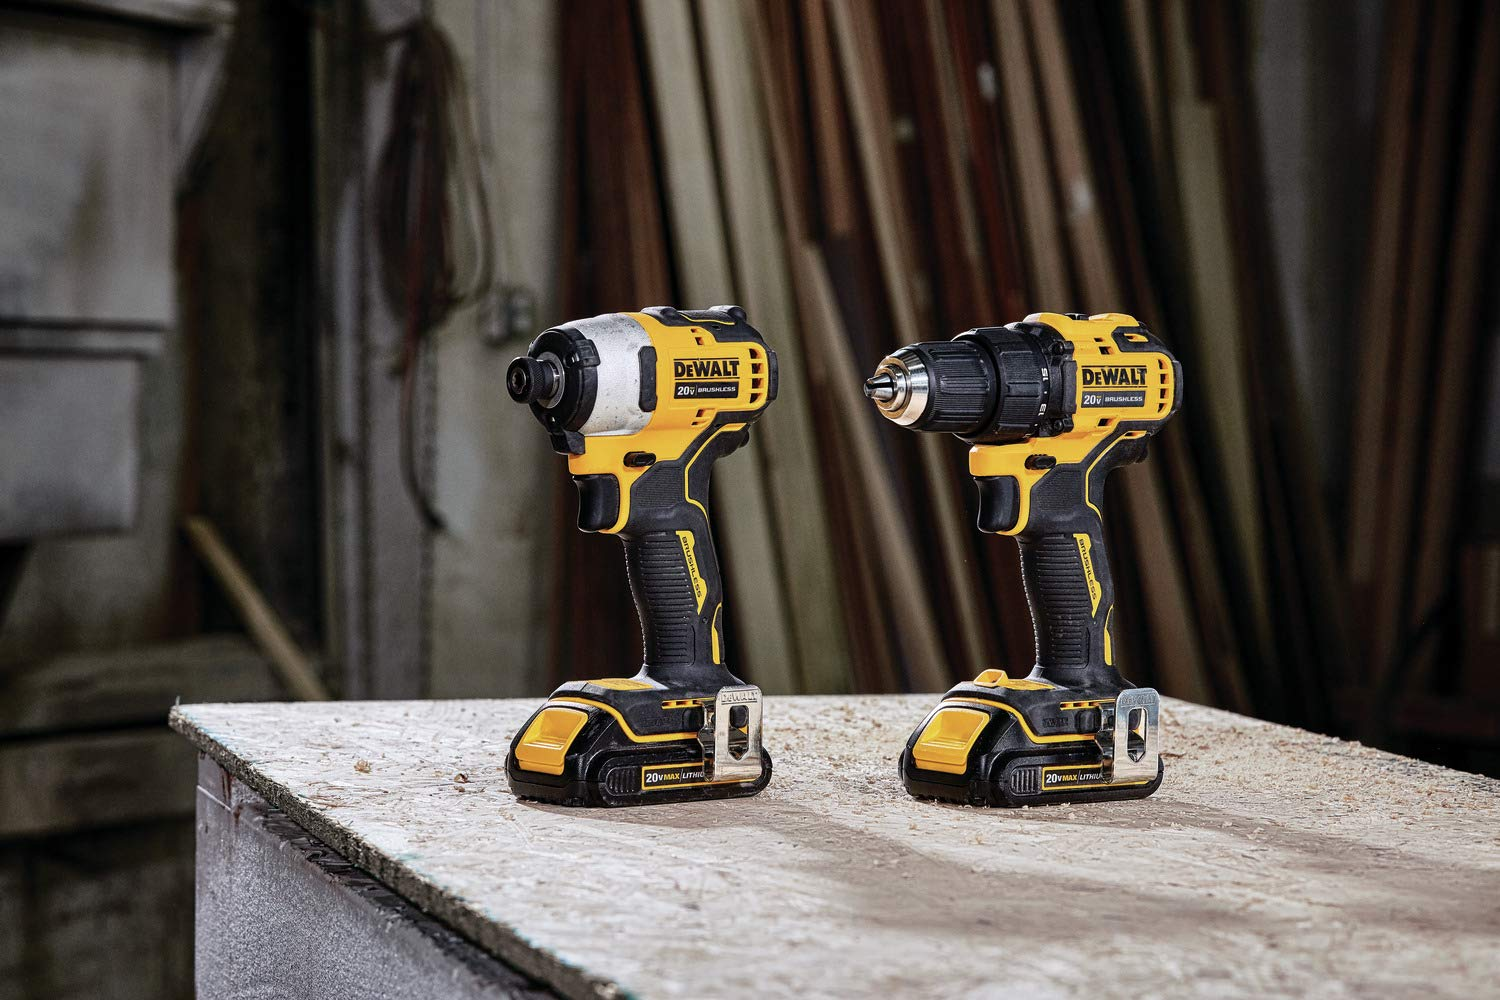 DEWALT DCK278C2 ATOMIC 20-Volt MAX Lithium-Ion Brushless Cordless Compact Drill Impact Combo Kit